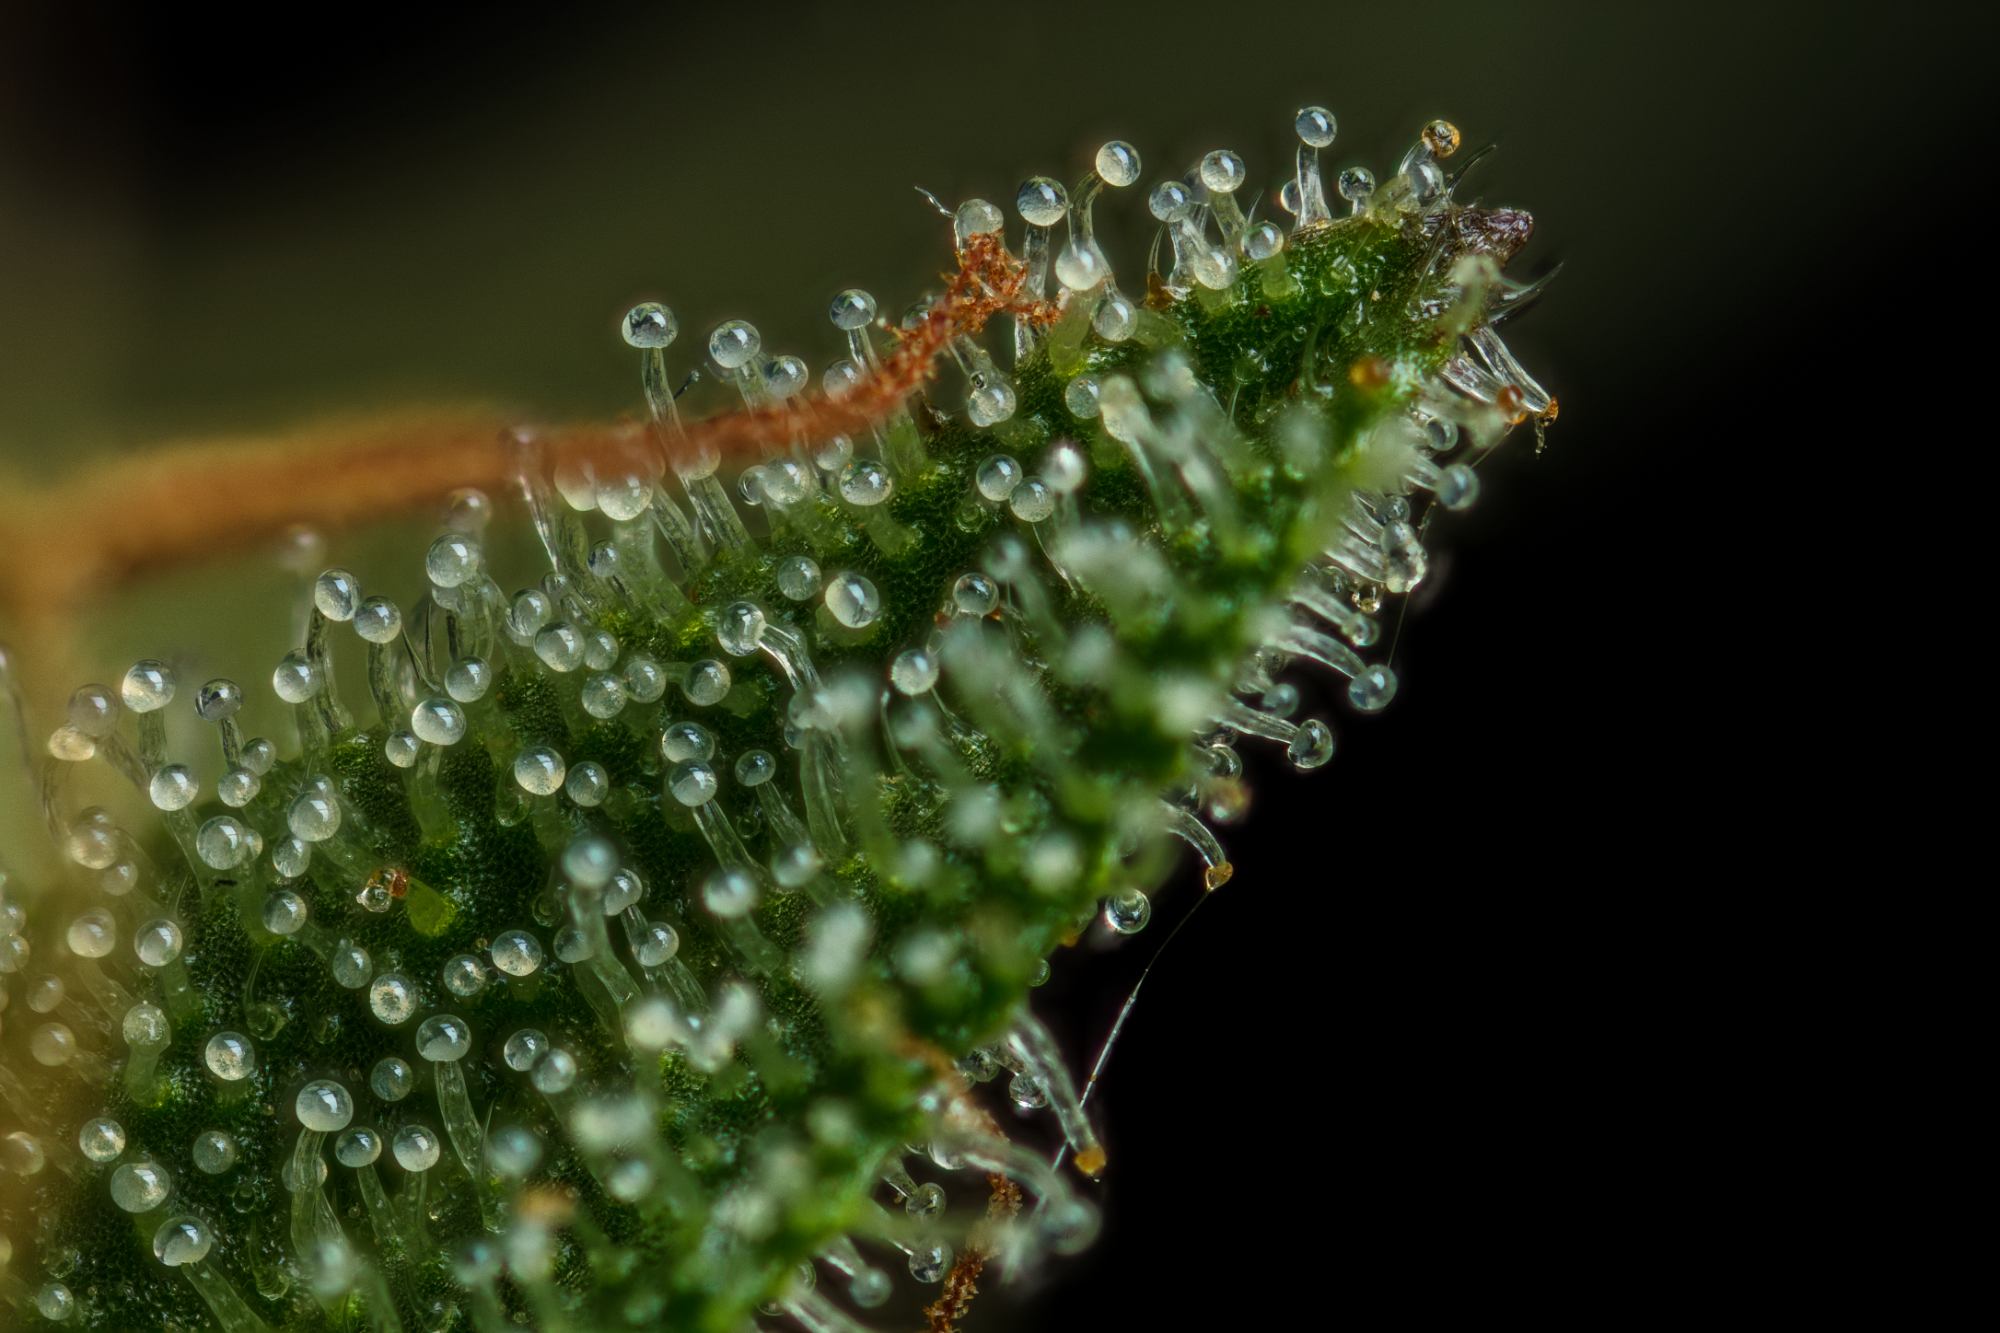 Trichome_2k.png